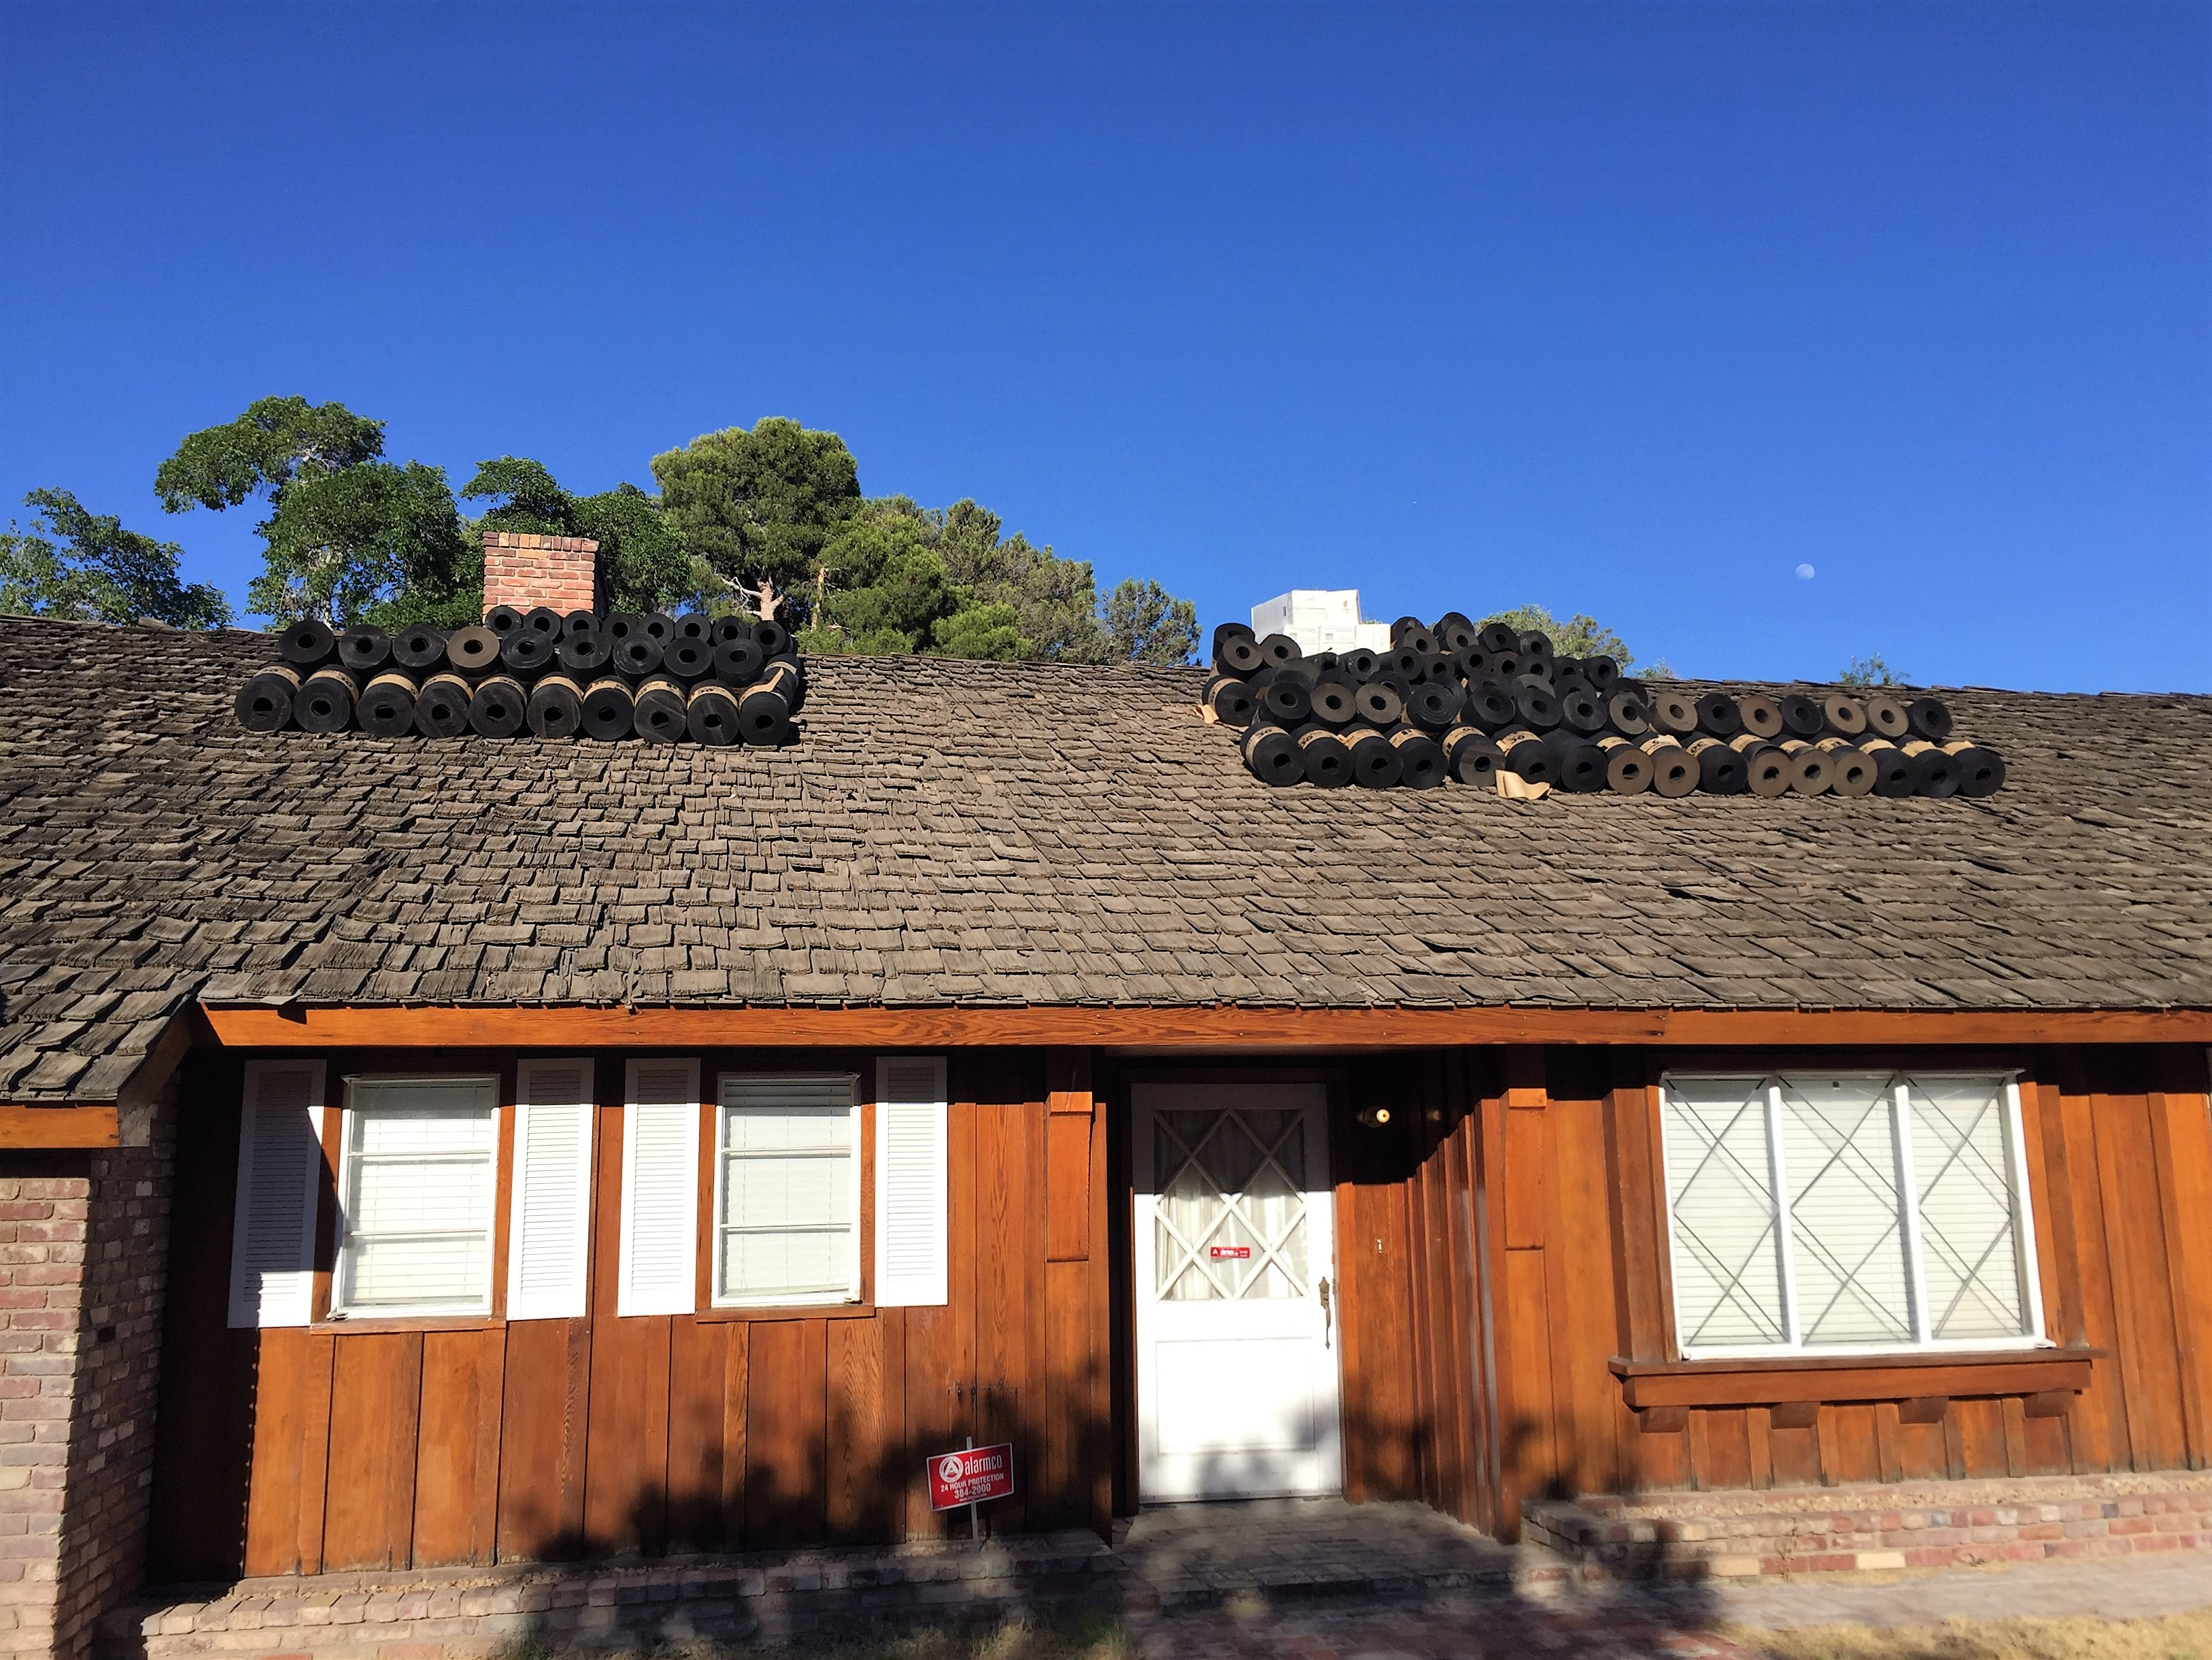 CeDUR shake roof replacement in Las Vegas on viintage ranch home